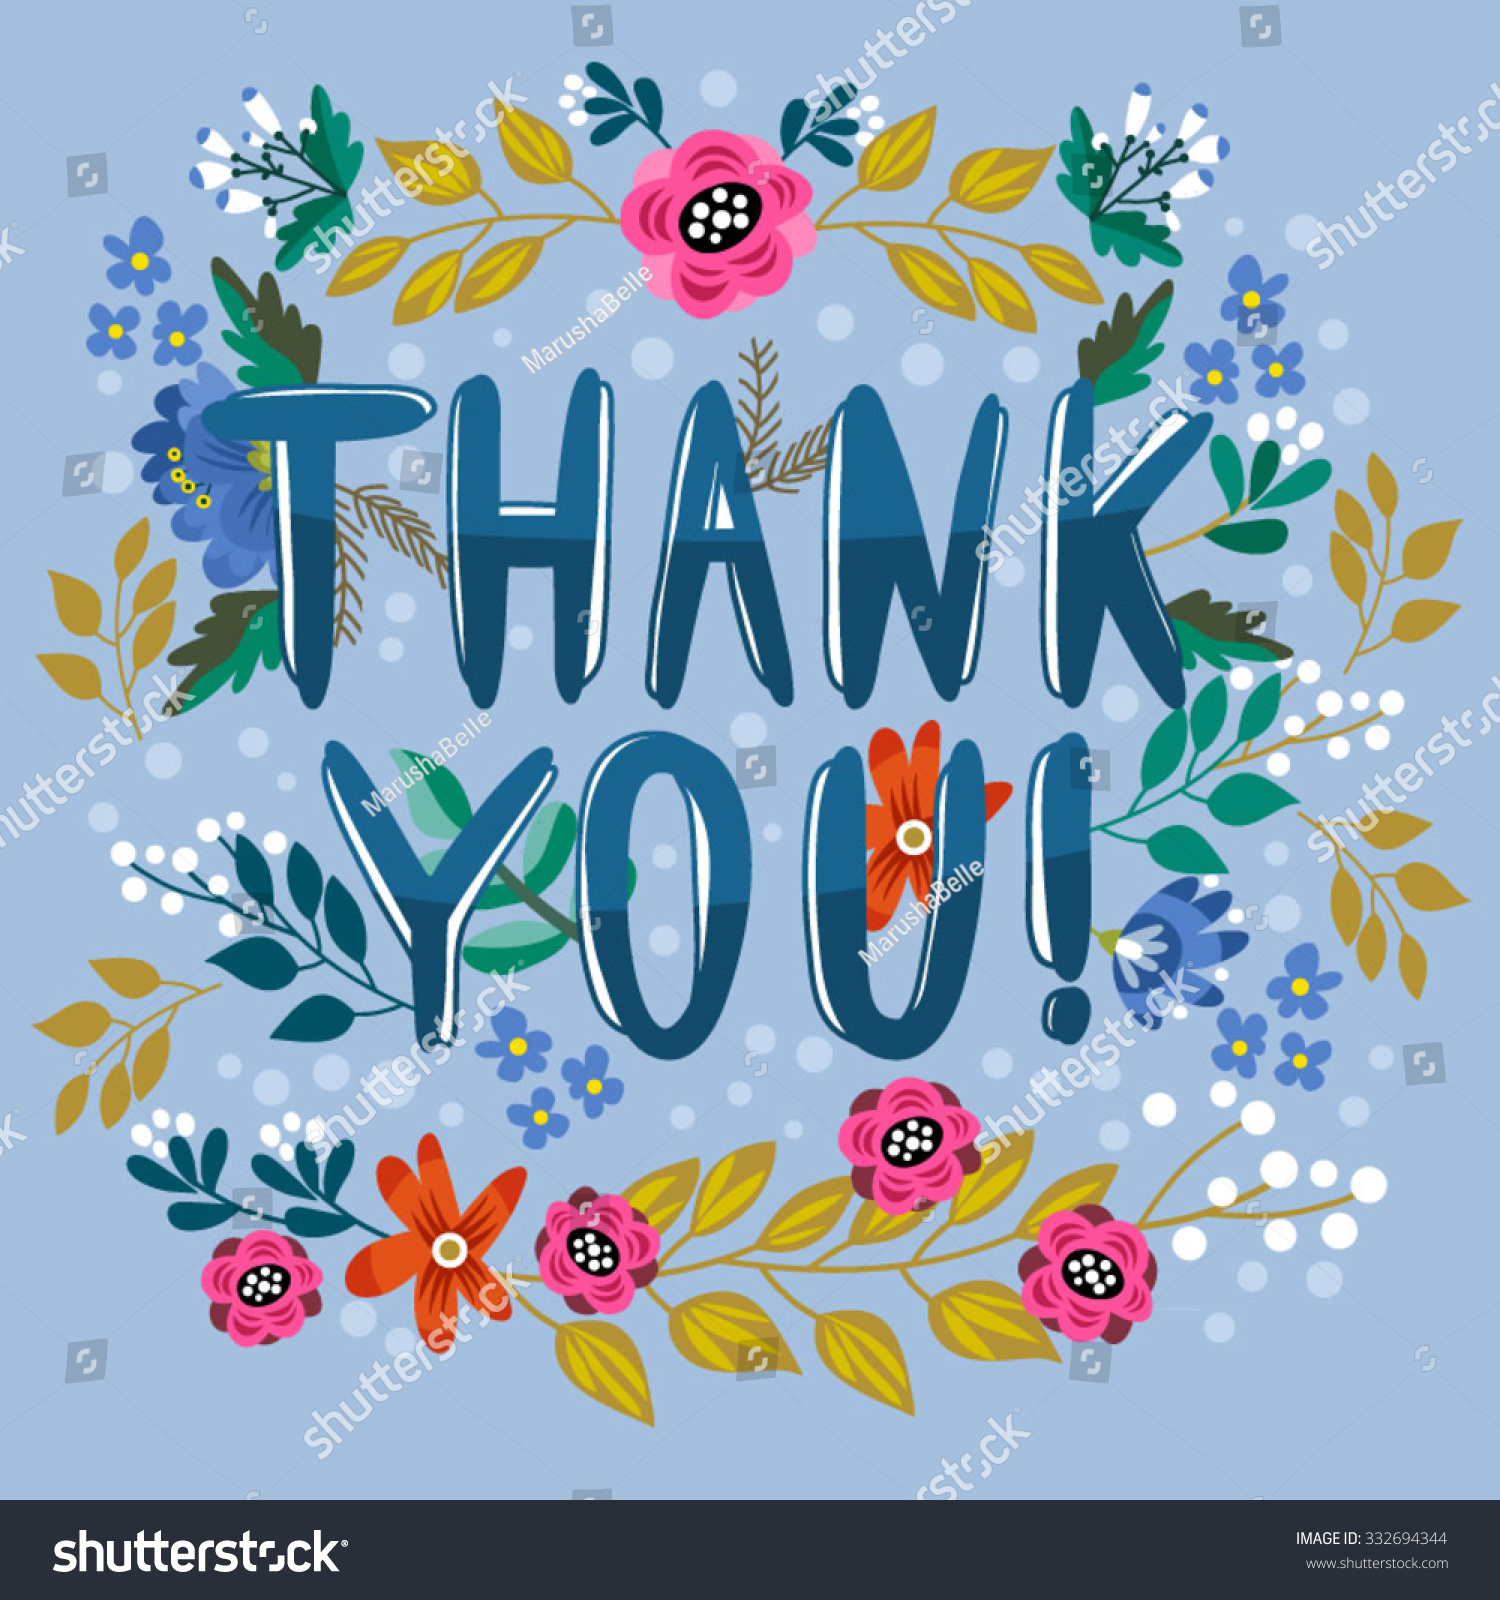 Beautiful greeting card thank you bright stock vector 332694344 beautiful greeting card thank you bright illustration can be used as greeting kristyandbryce Choice Image